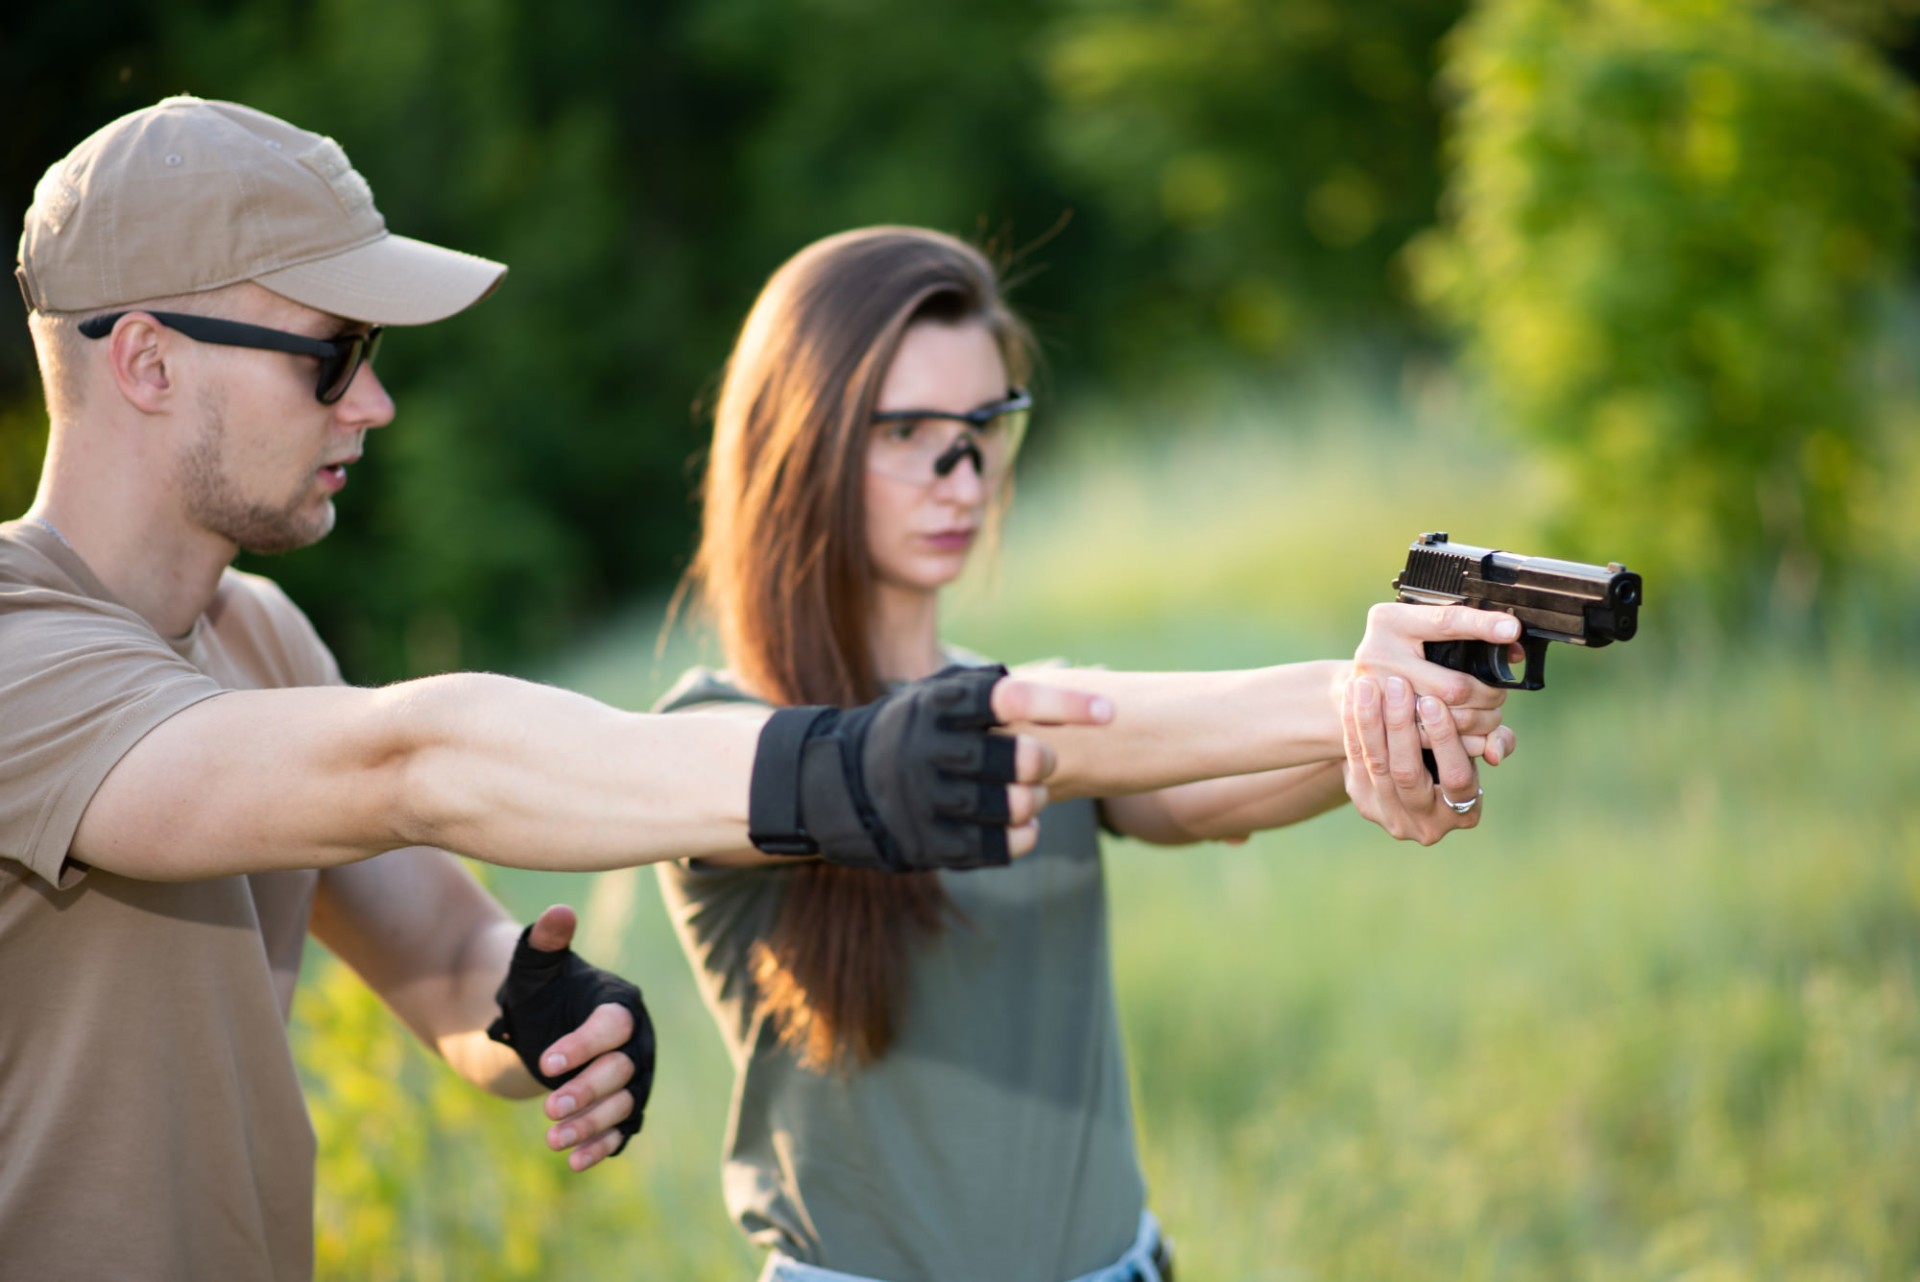 7 Important Things to Look for in a Gun Safety Course